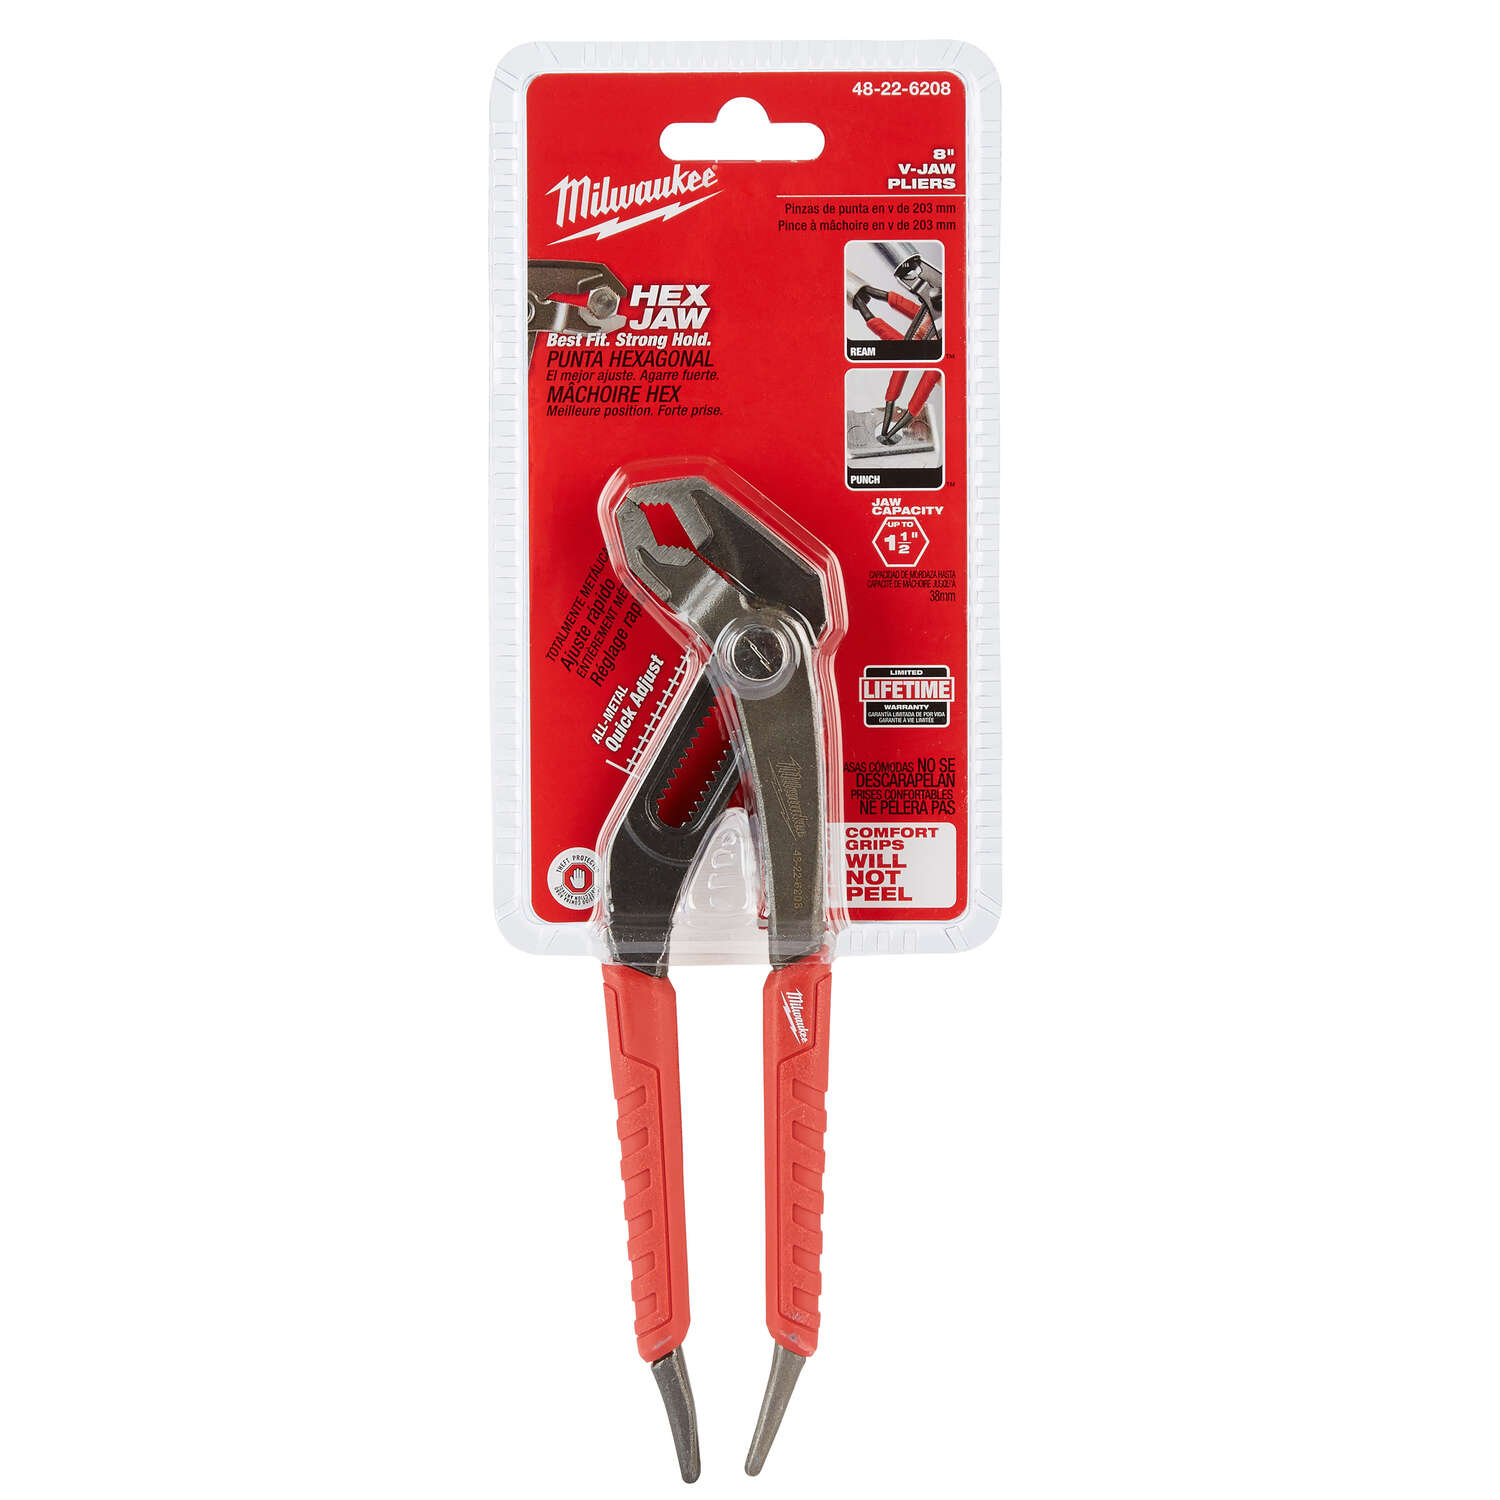 Milwaukee  REAM & PUNCH  Hex Jaw  Hex Jaw  Slip Joint Pliers  8 in. 1 pk Red  Forged Alloy Steel